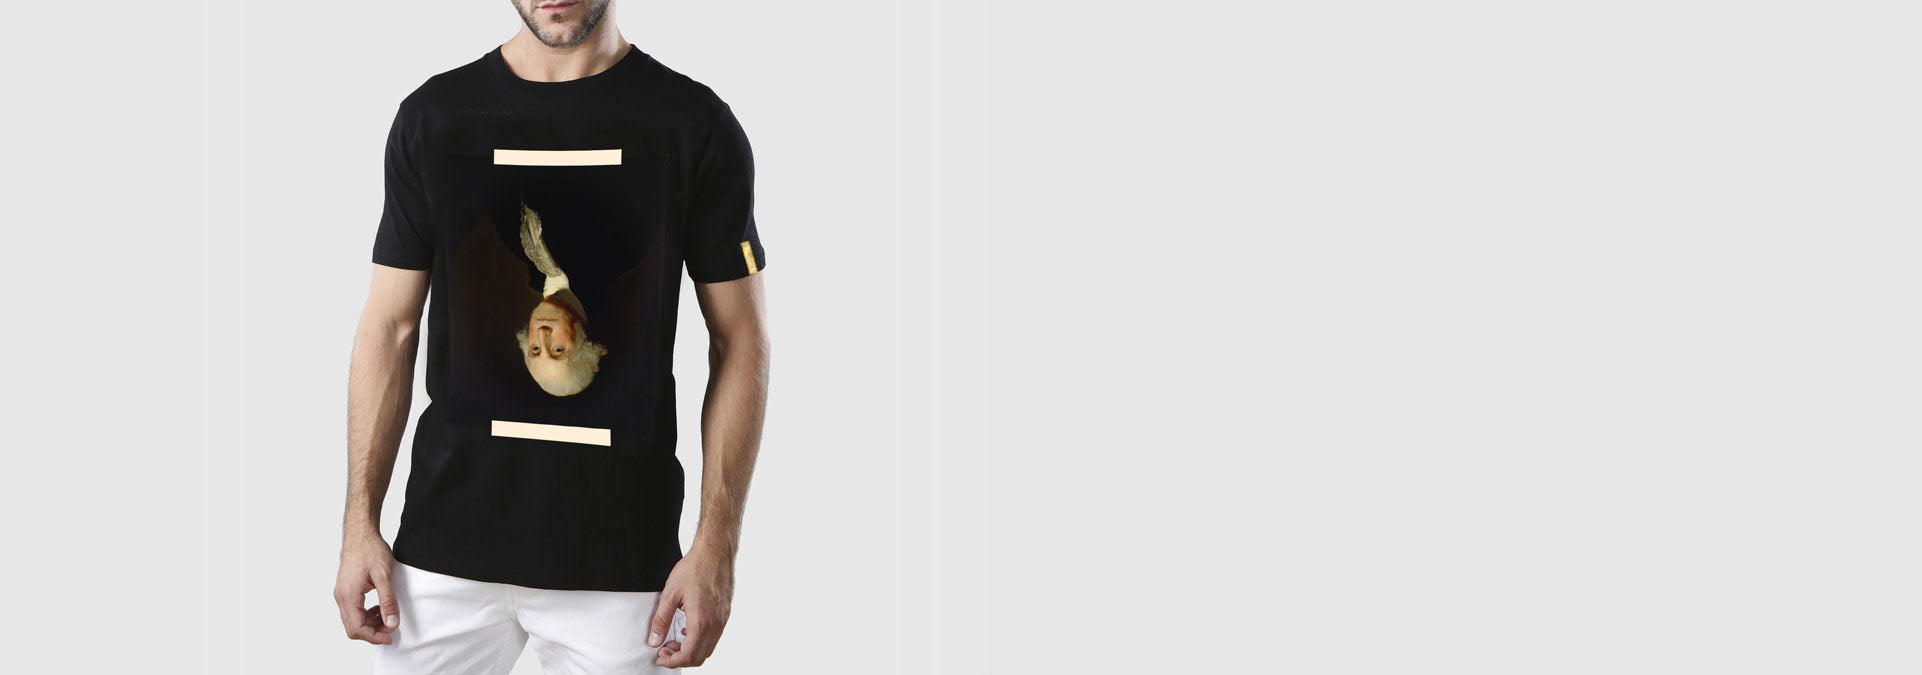 Perspective T-Shirt Black